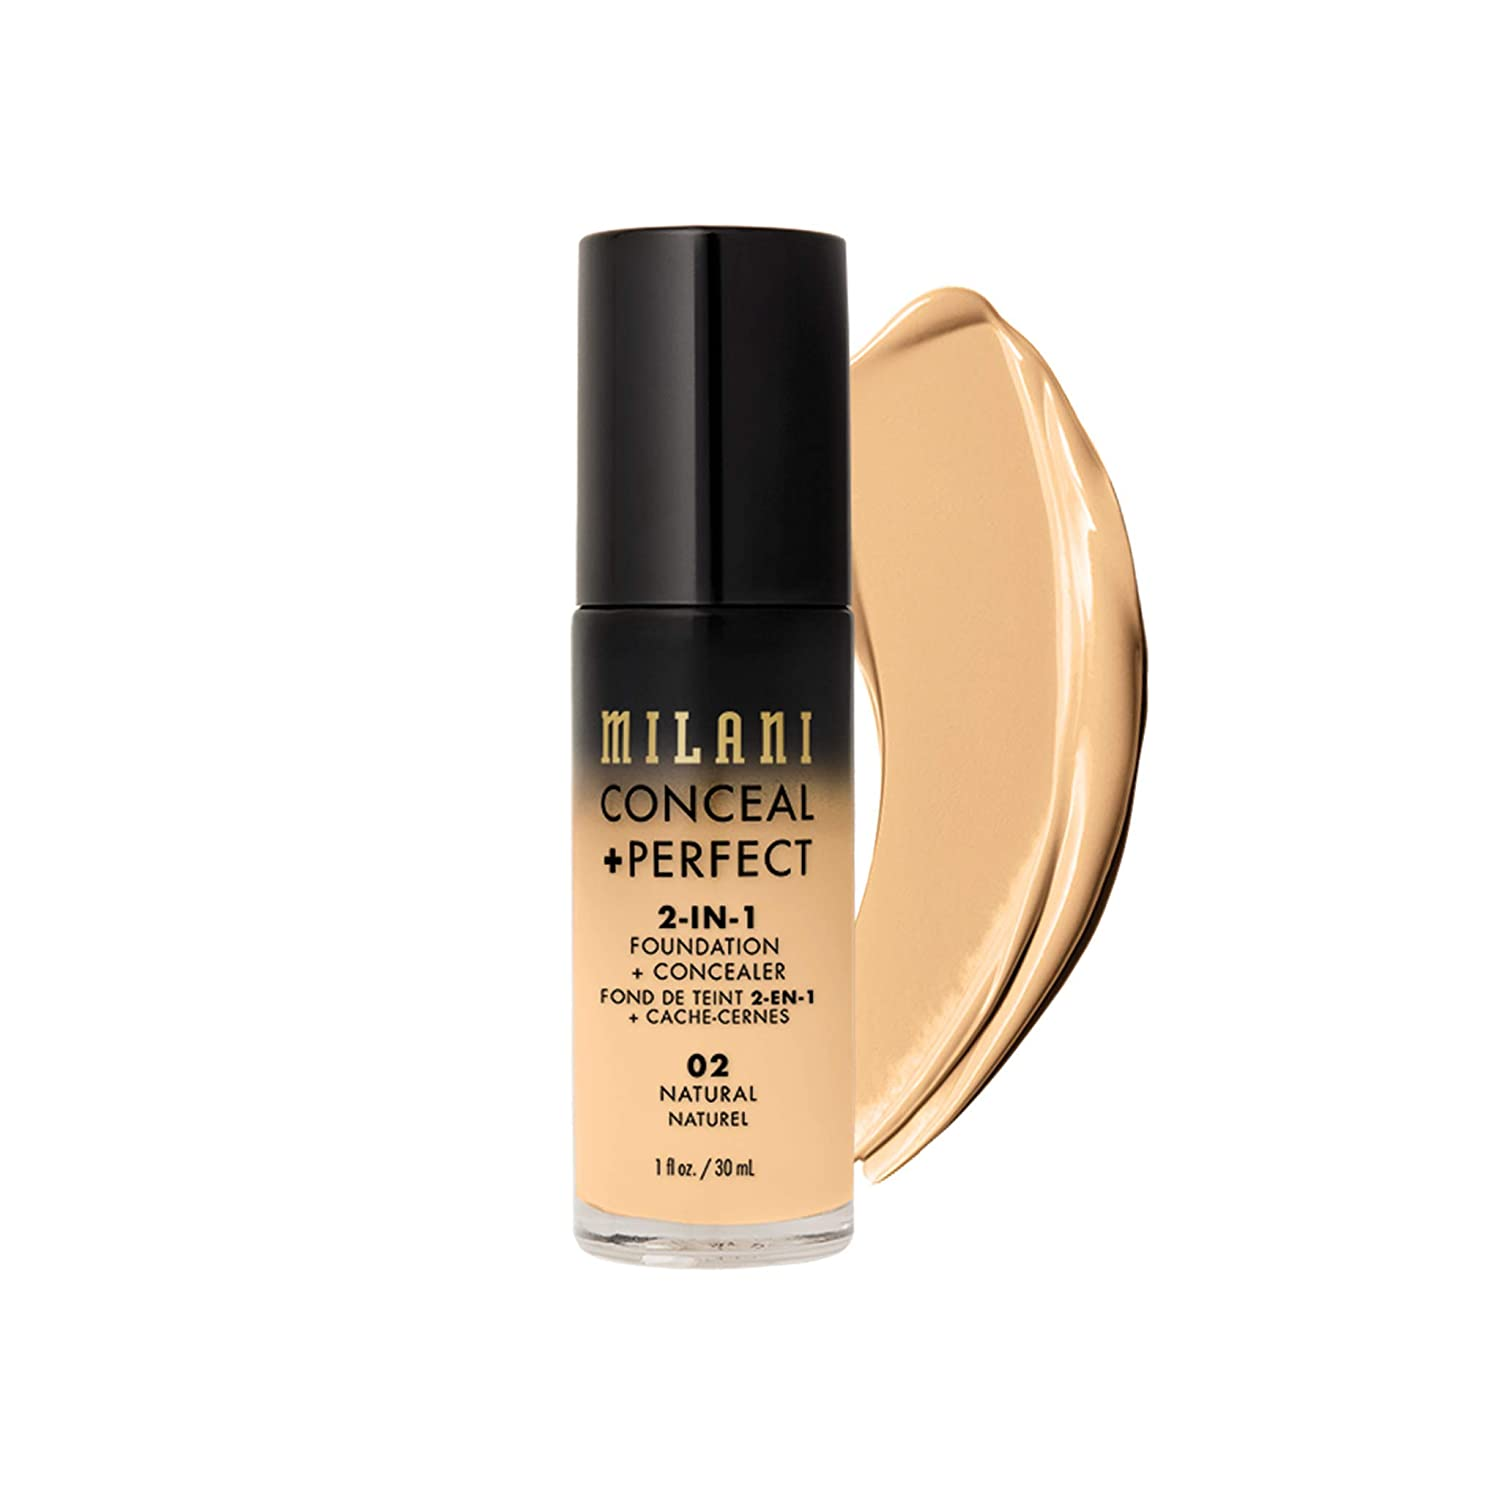 Milani Conceal + Perfect 2-in-1 Foundation + Concealer - Natural (1 Fl. Oz.) Cruelty-Free Liquid Foundation - Cover Under-Eye Circles, Blemishes & Skin Discoloration for a Flawless Complexion